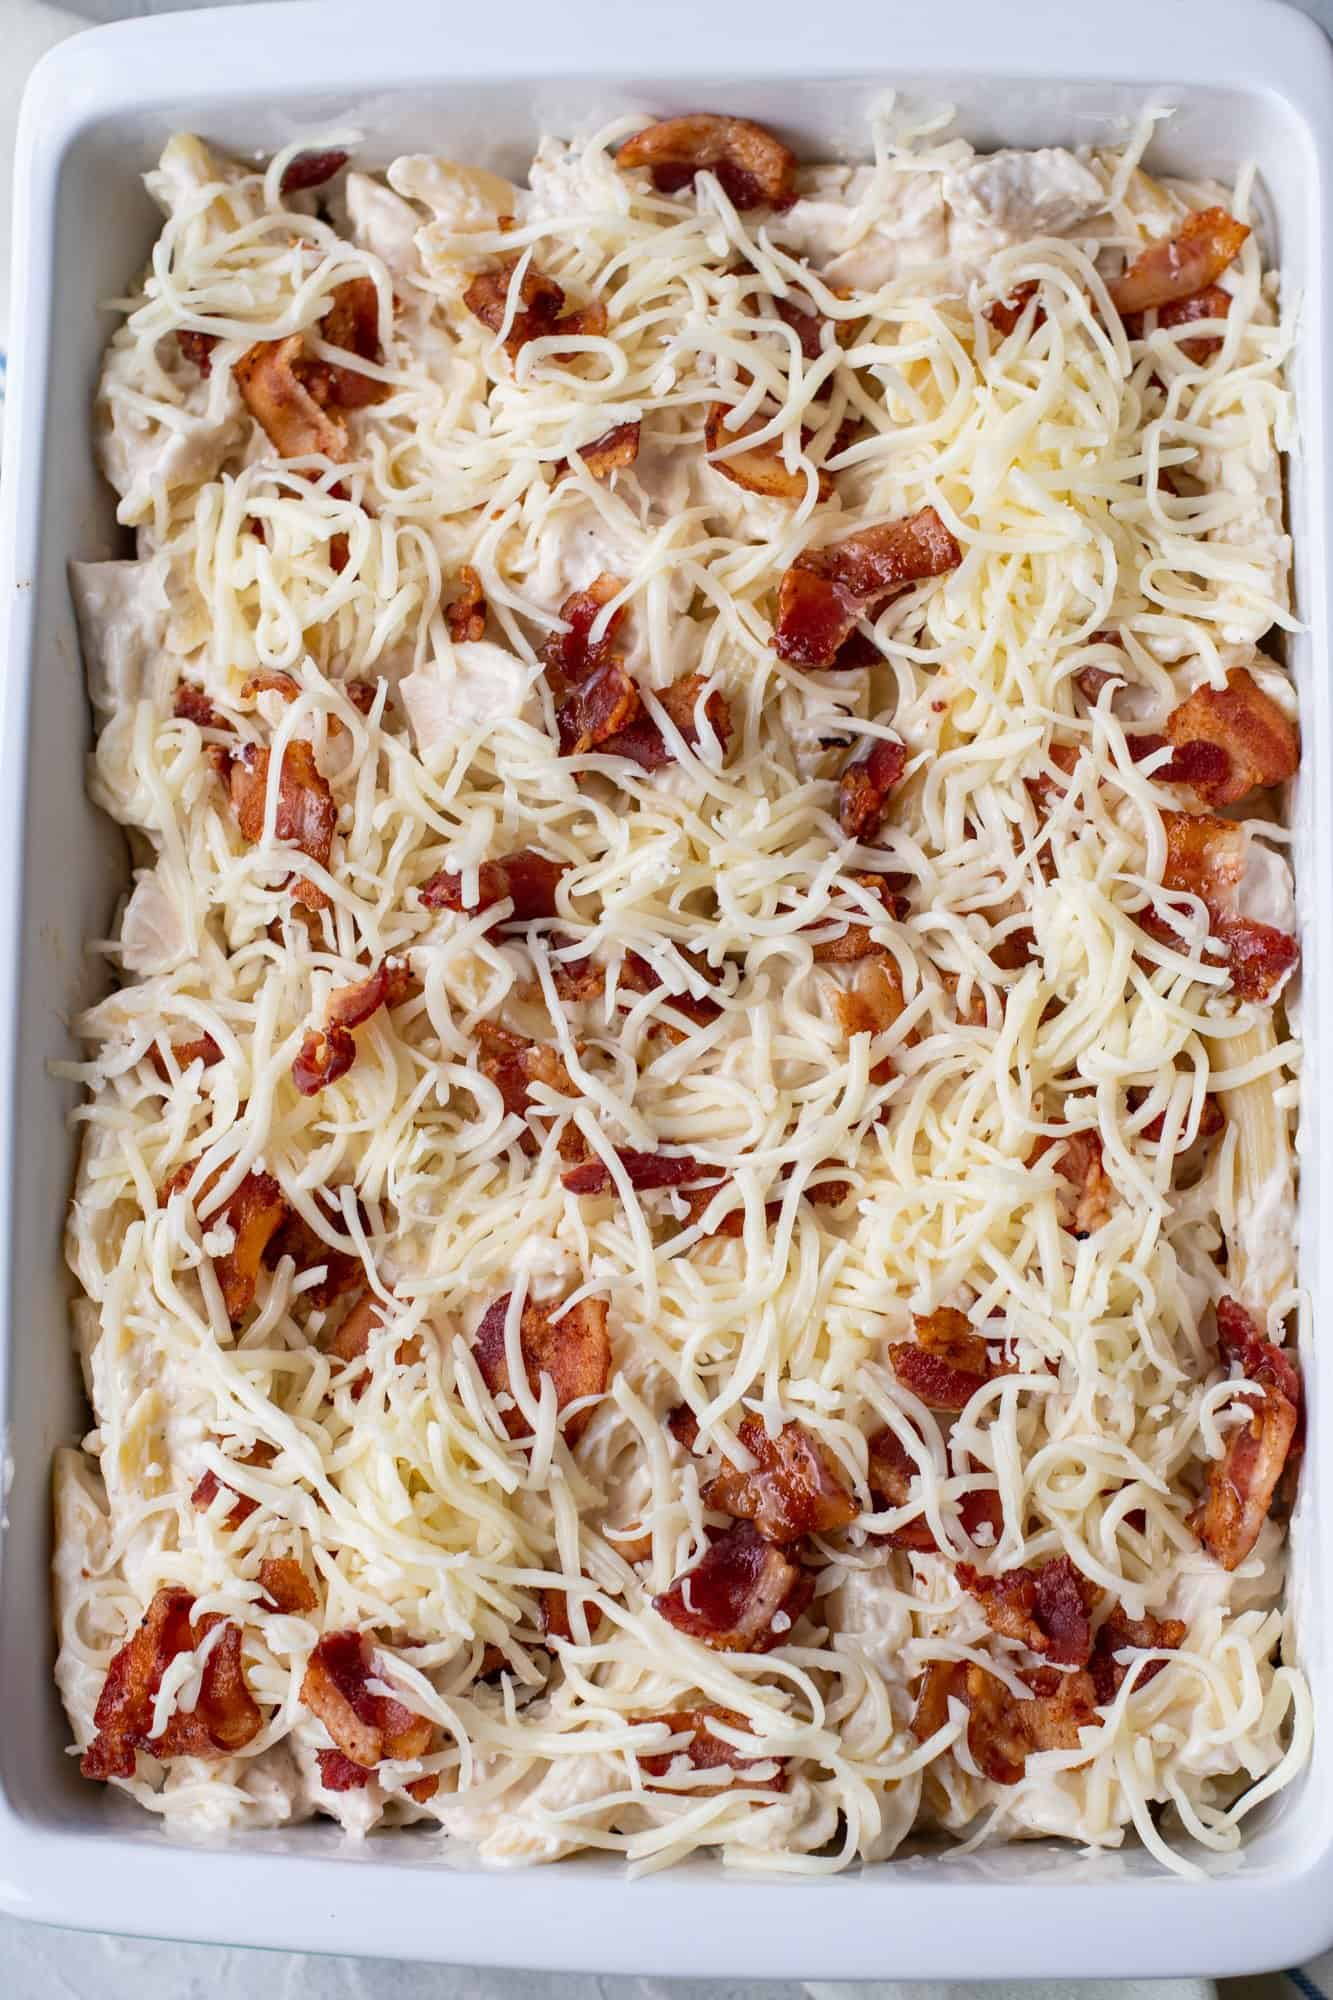 shredded cheese and cooked bacon sprinkled on top of pasta in baking dish